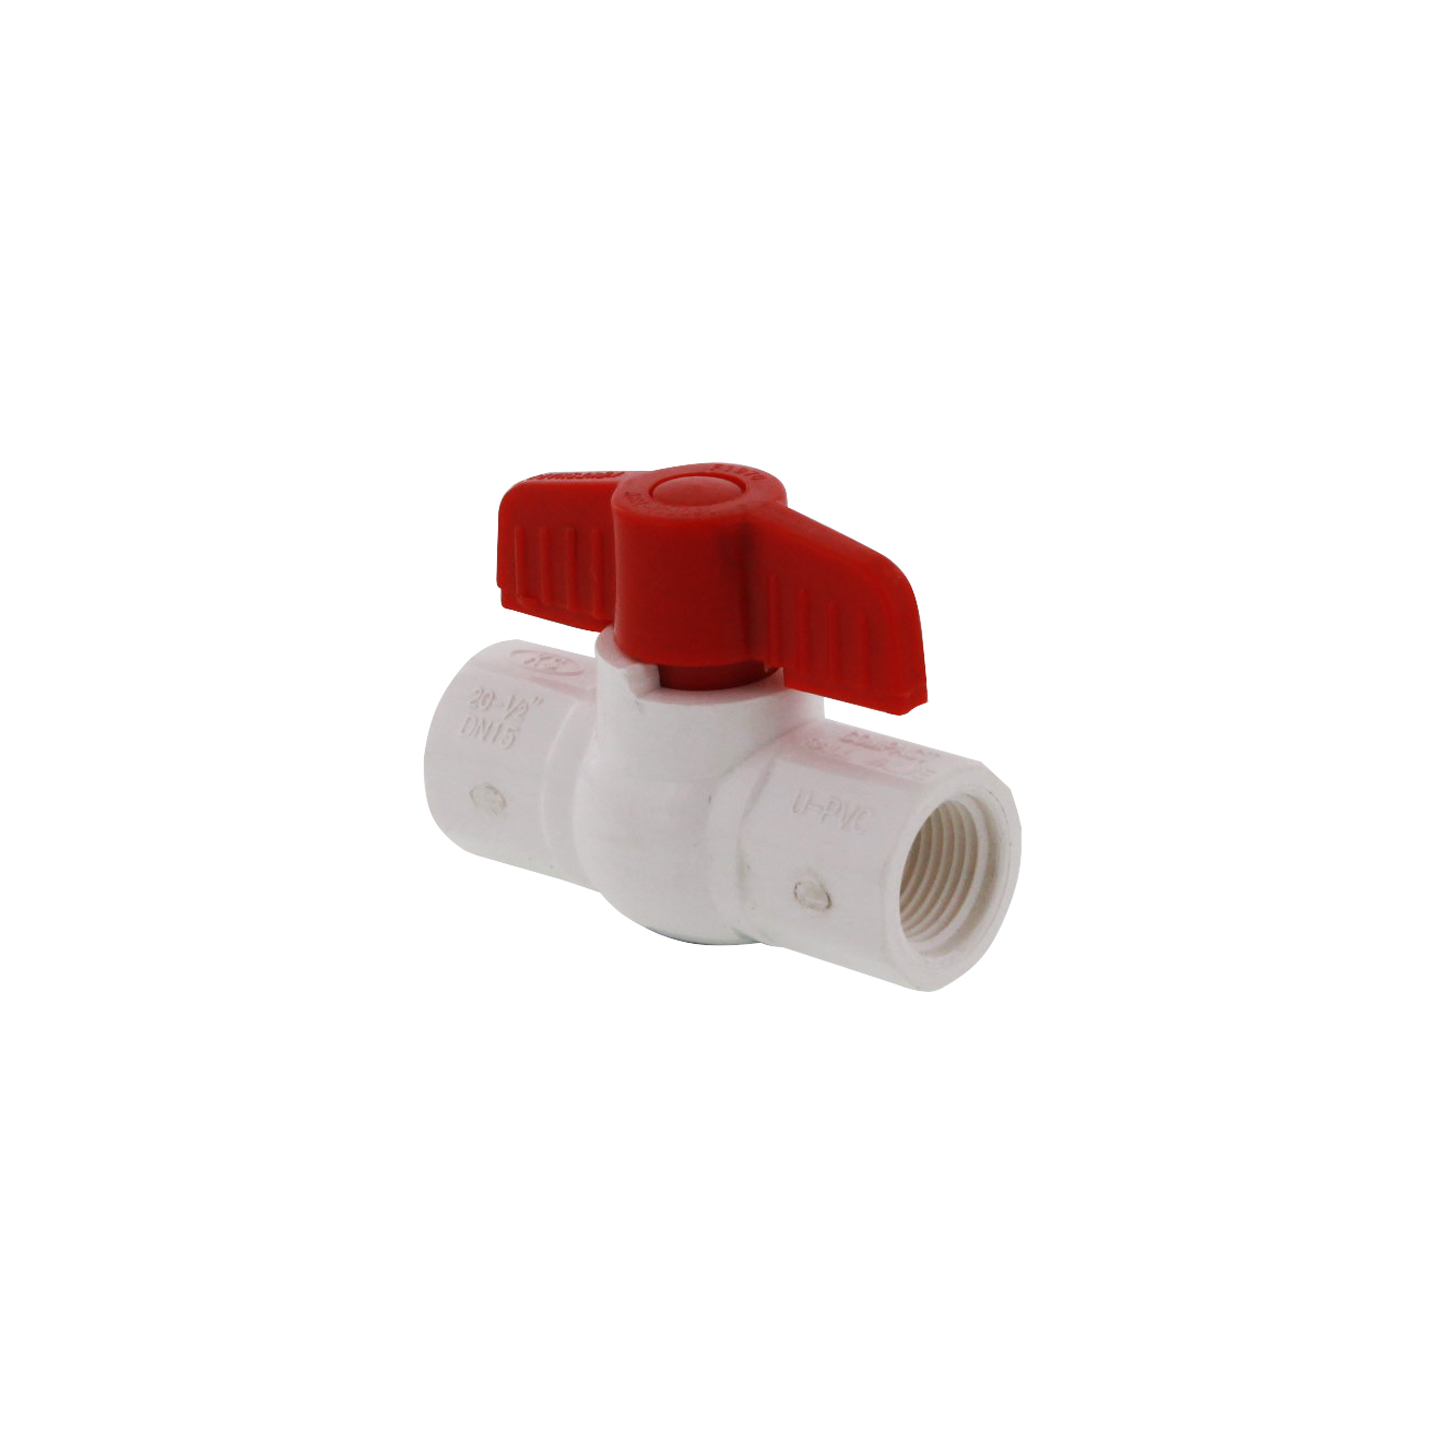 Image of .5FV Rusco Replacement Flush Valve For Spin-Down Water Filtration Systems